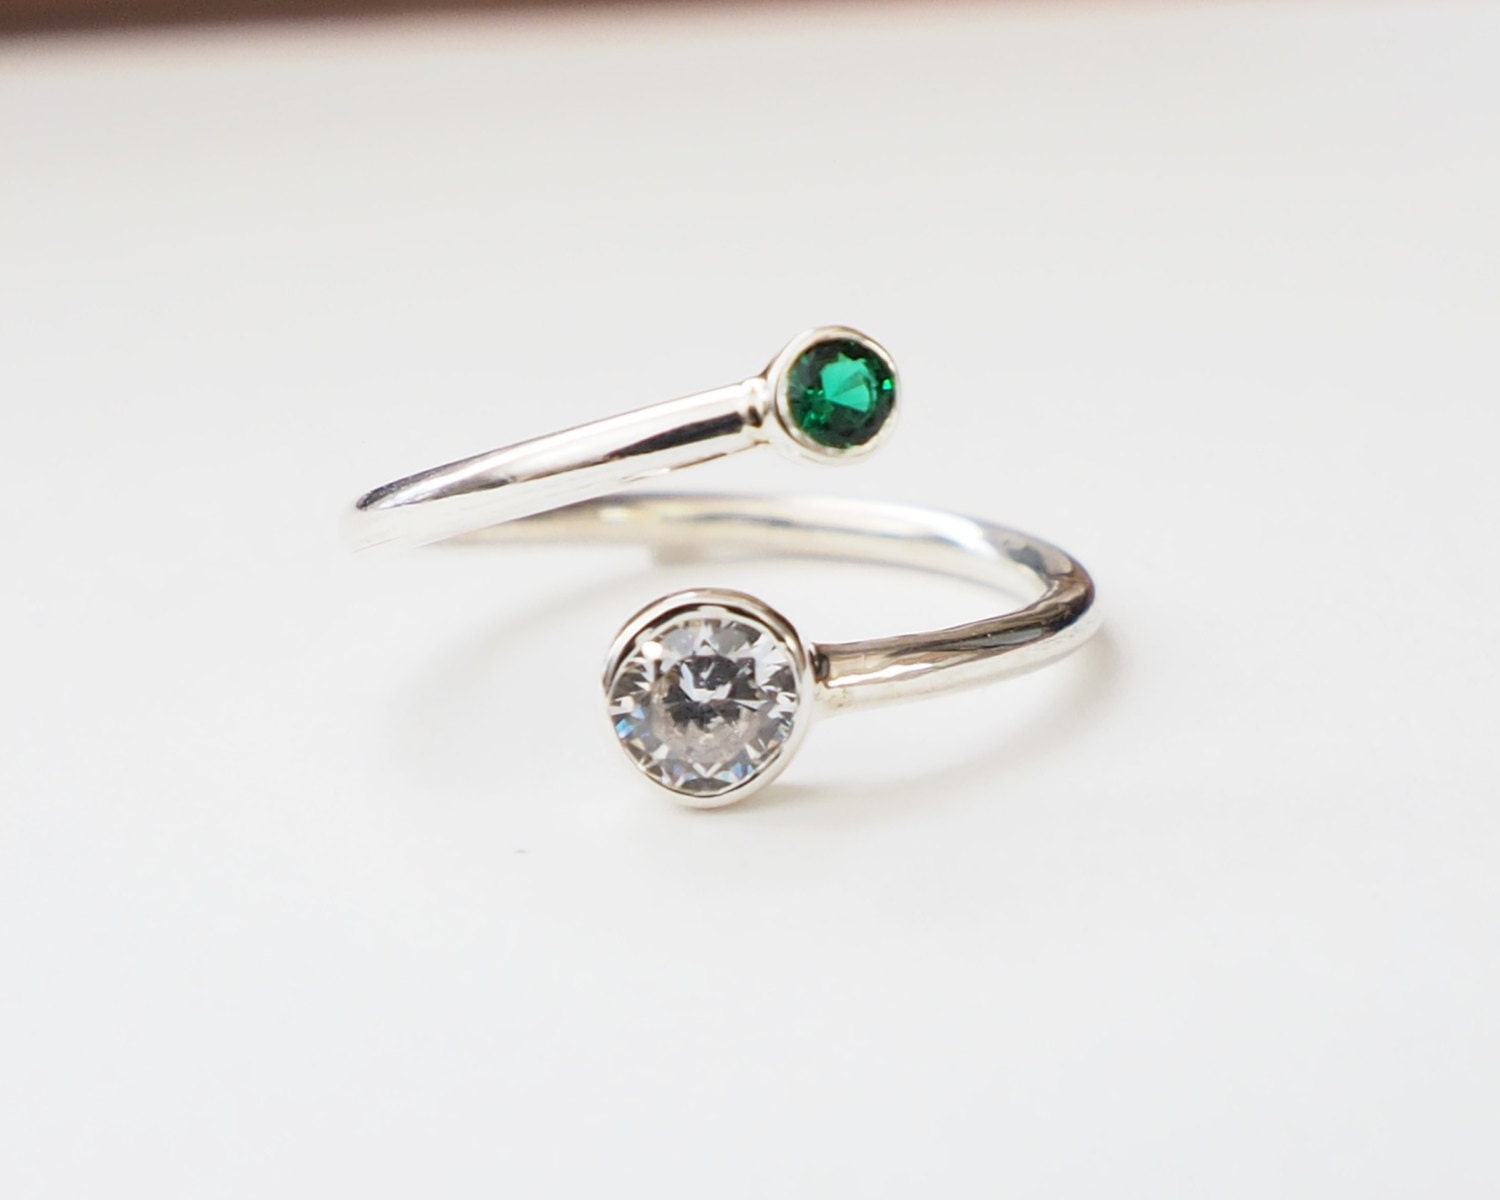 30% OFF Dual Birthstone Ring Couples Birthstone Ring